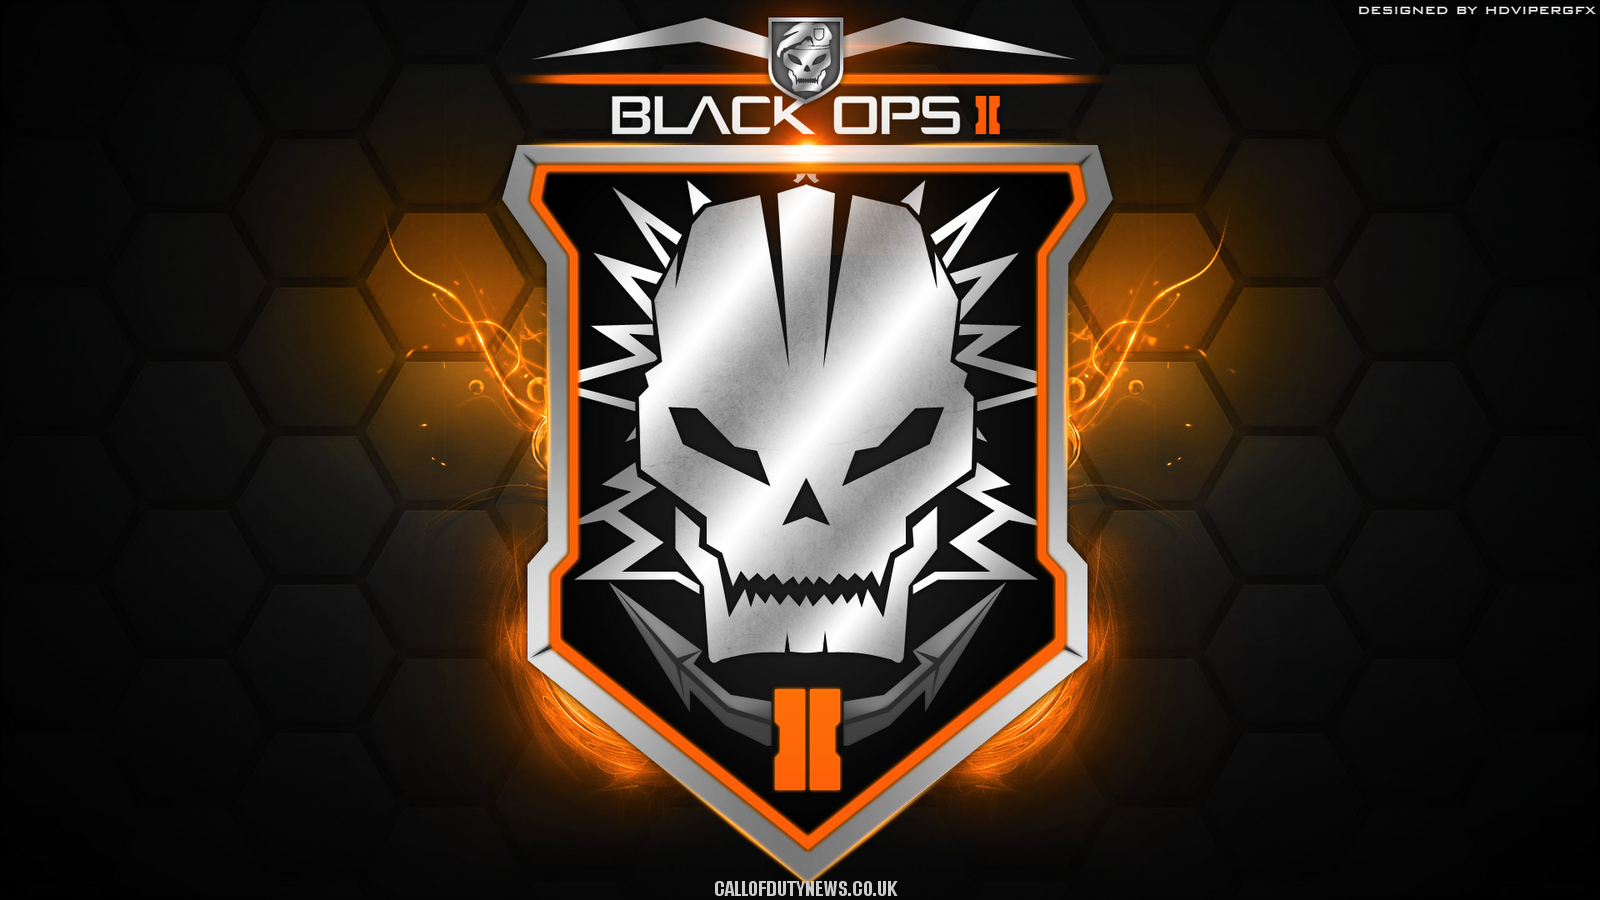 HD WALLPAPERS MANIA Call Of Duty Black Ops 2 HD Wallpapers 1600x900